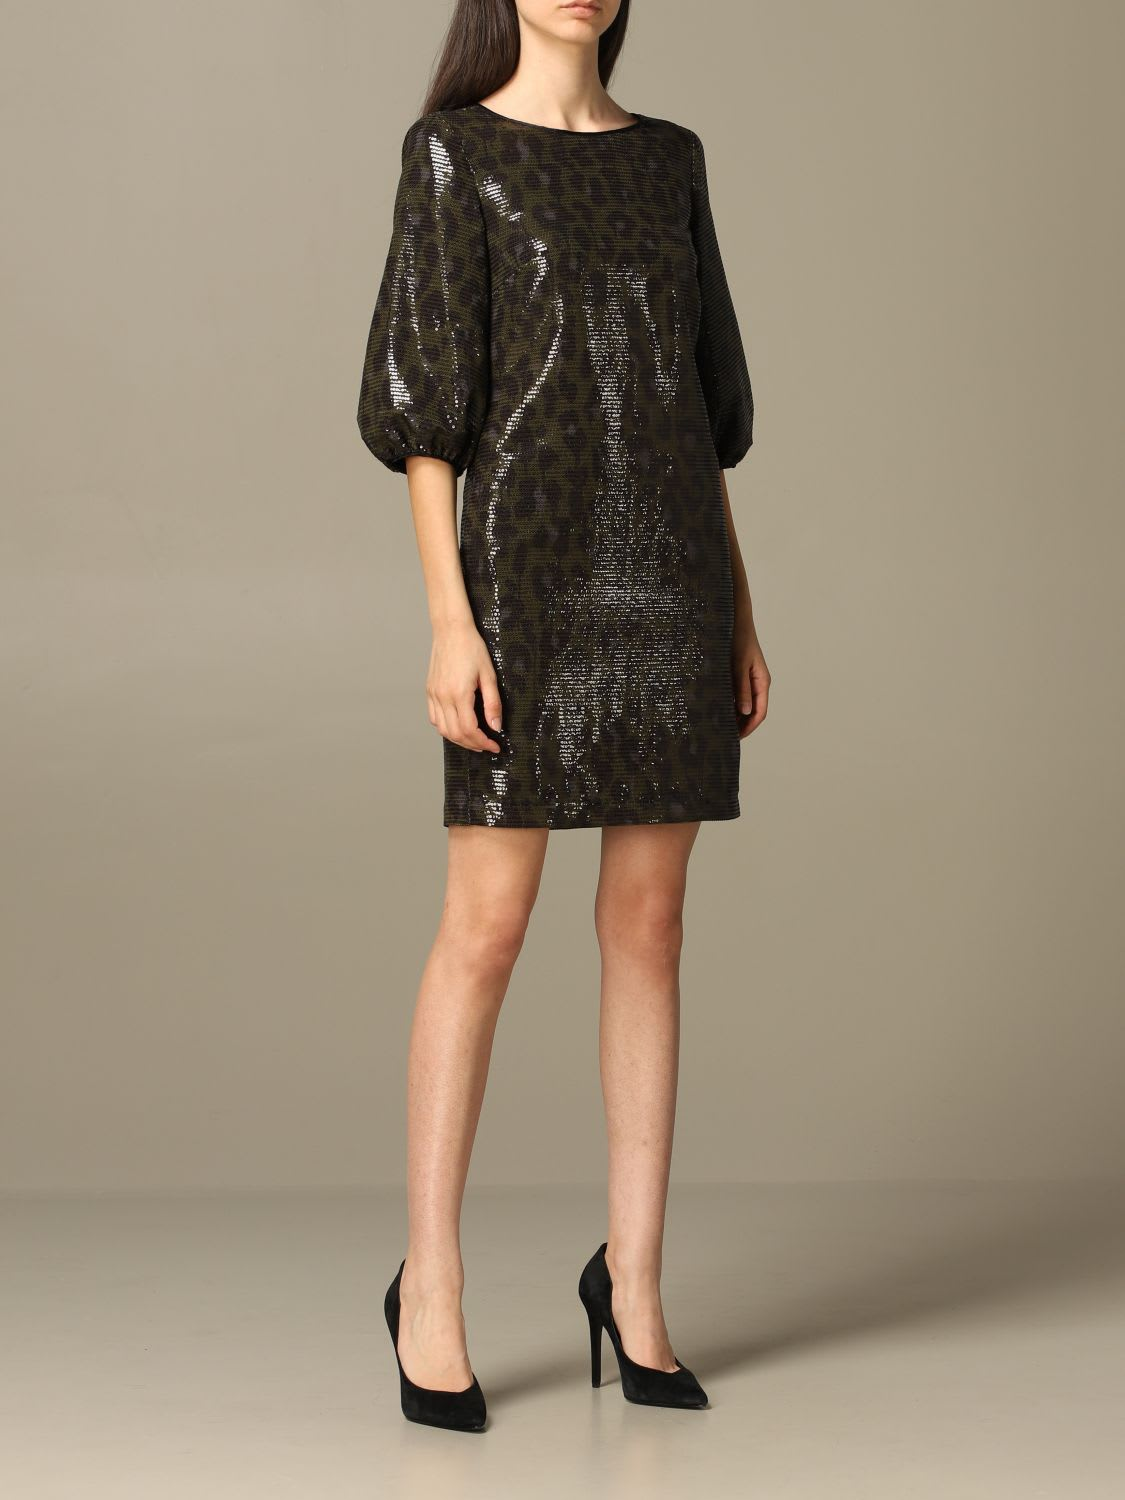 Boutique Moschino Dress Moschino Boutique Dress In Animalier Sequins